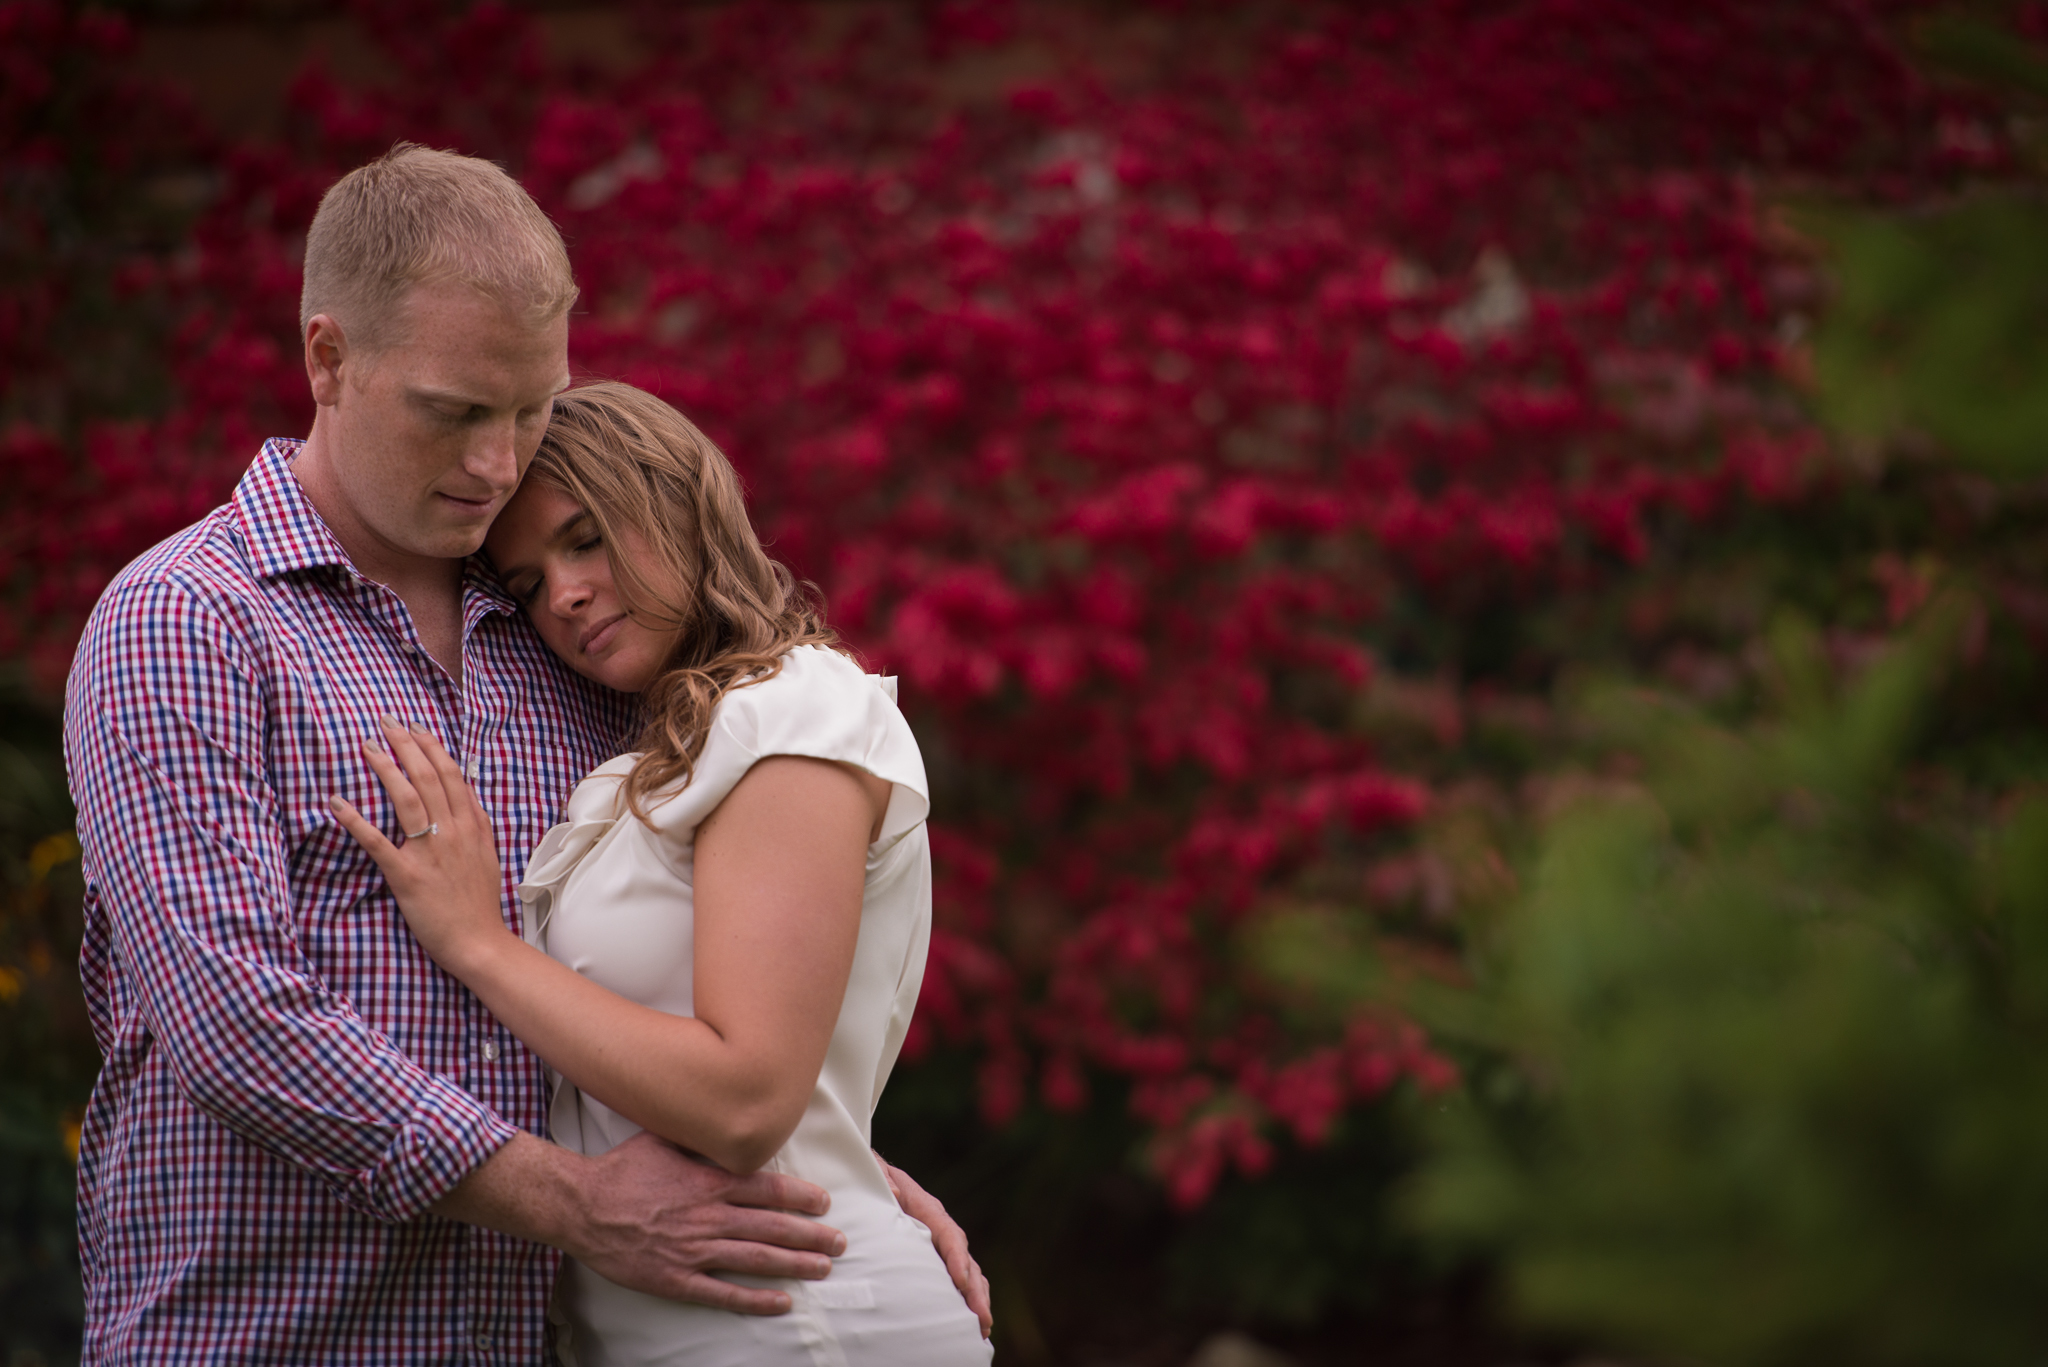 engagement photographer in buffalo, NY